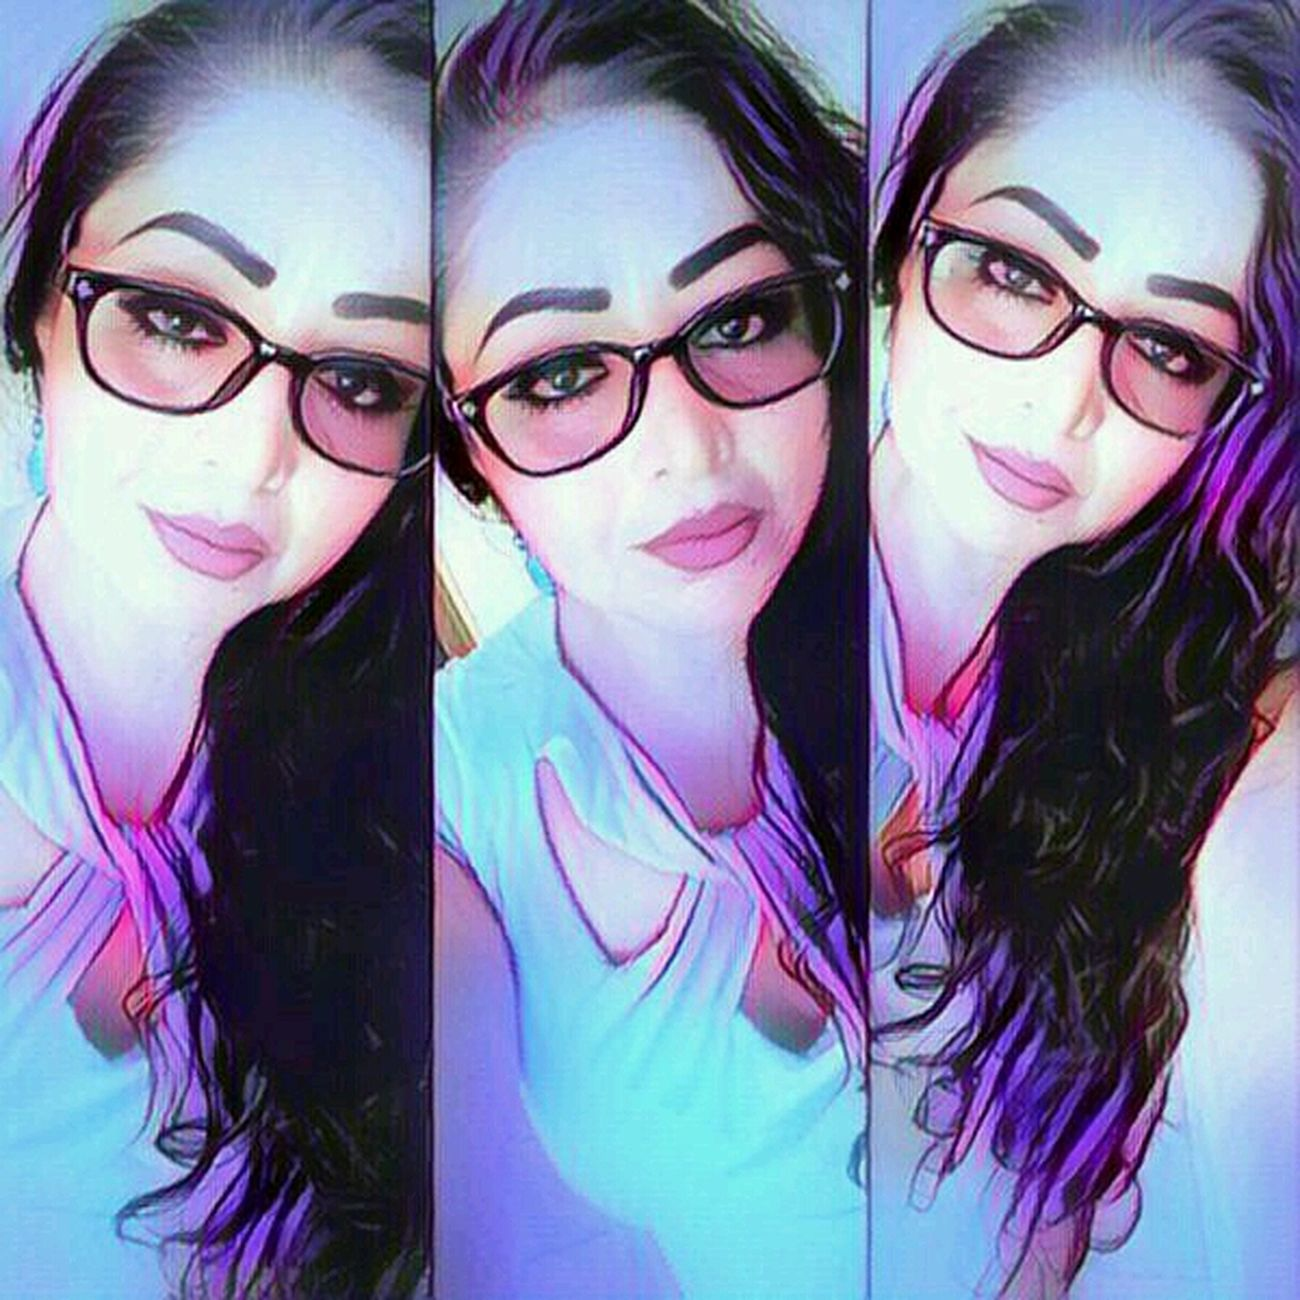 Eyeglasses  Me JustMe Curly Hair ❤ Justme ❤ Je T Aime ❤❤ Long Hair Eyeglasses  Glasses👌 Bye ✌ Friendship Make-up Hi Glasses See You Soon Portrait Smiling Day Only Women One Woman Only Adult Adults Only Young Adult Young Women People